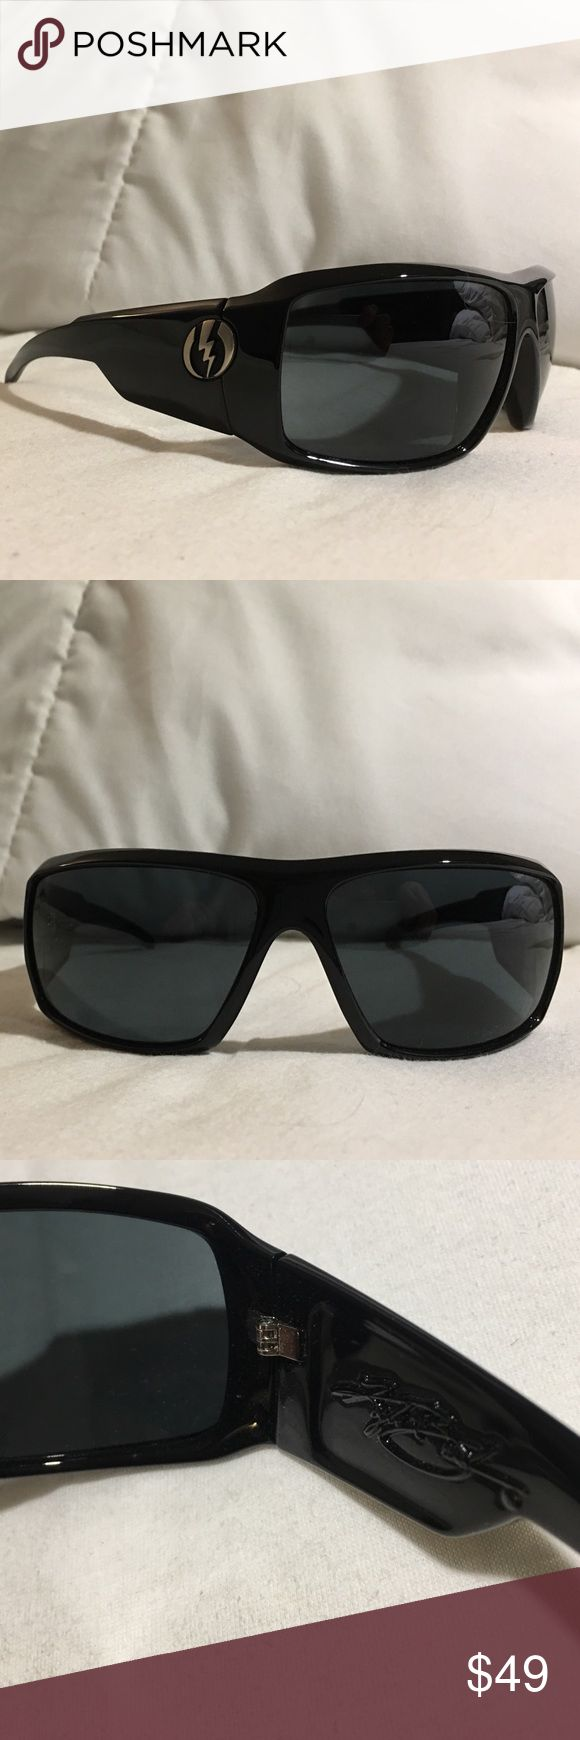 """Electric Sunglasses! Kyle Busch """"KB1's"""" Brand New Black Electric Sunglasses Electric  Accessories Sunglasses"""